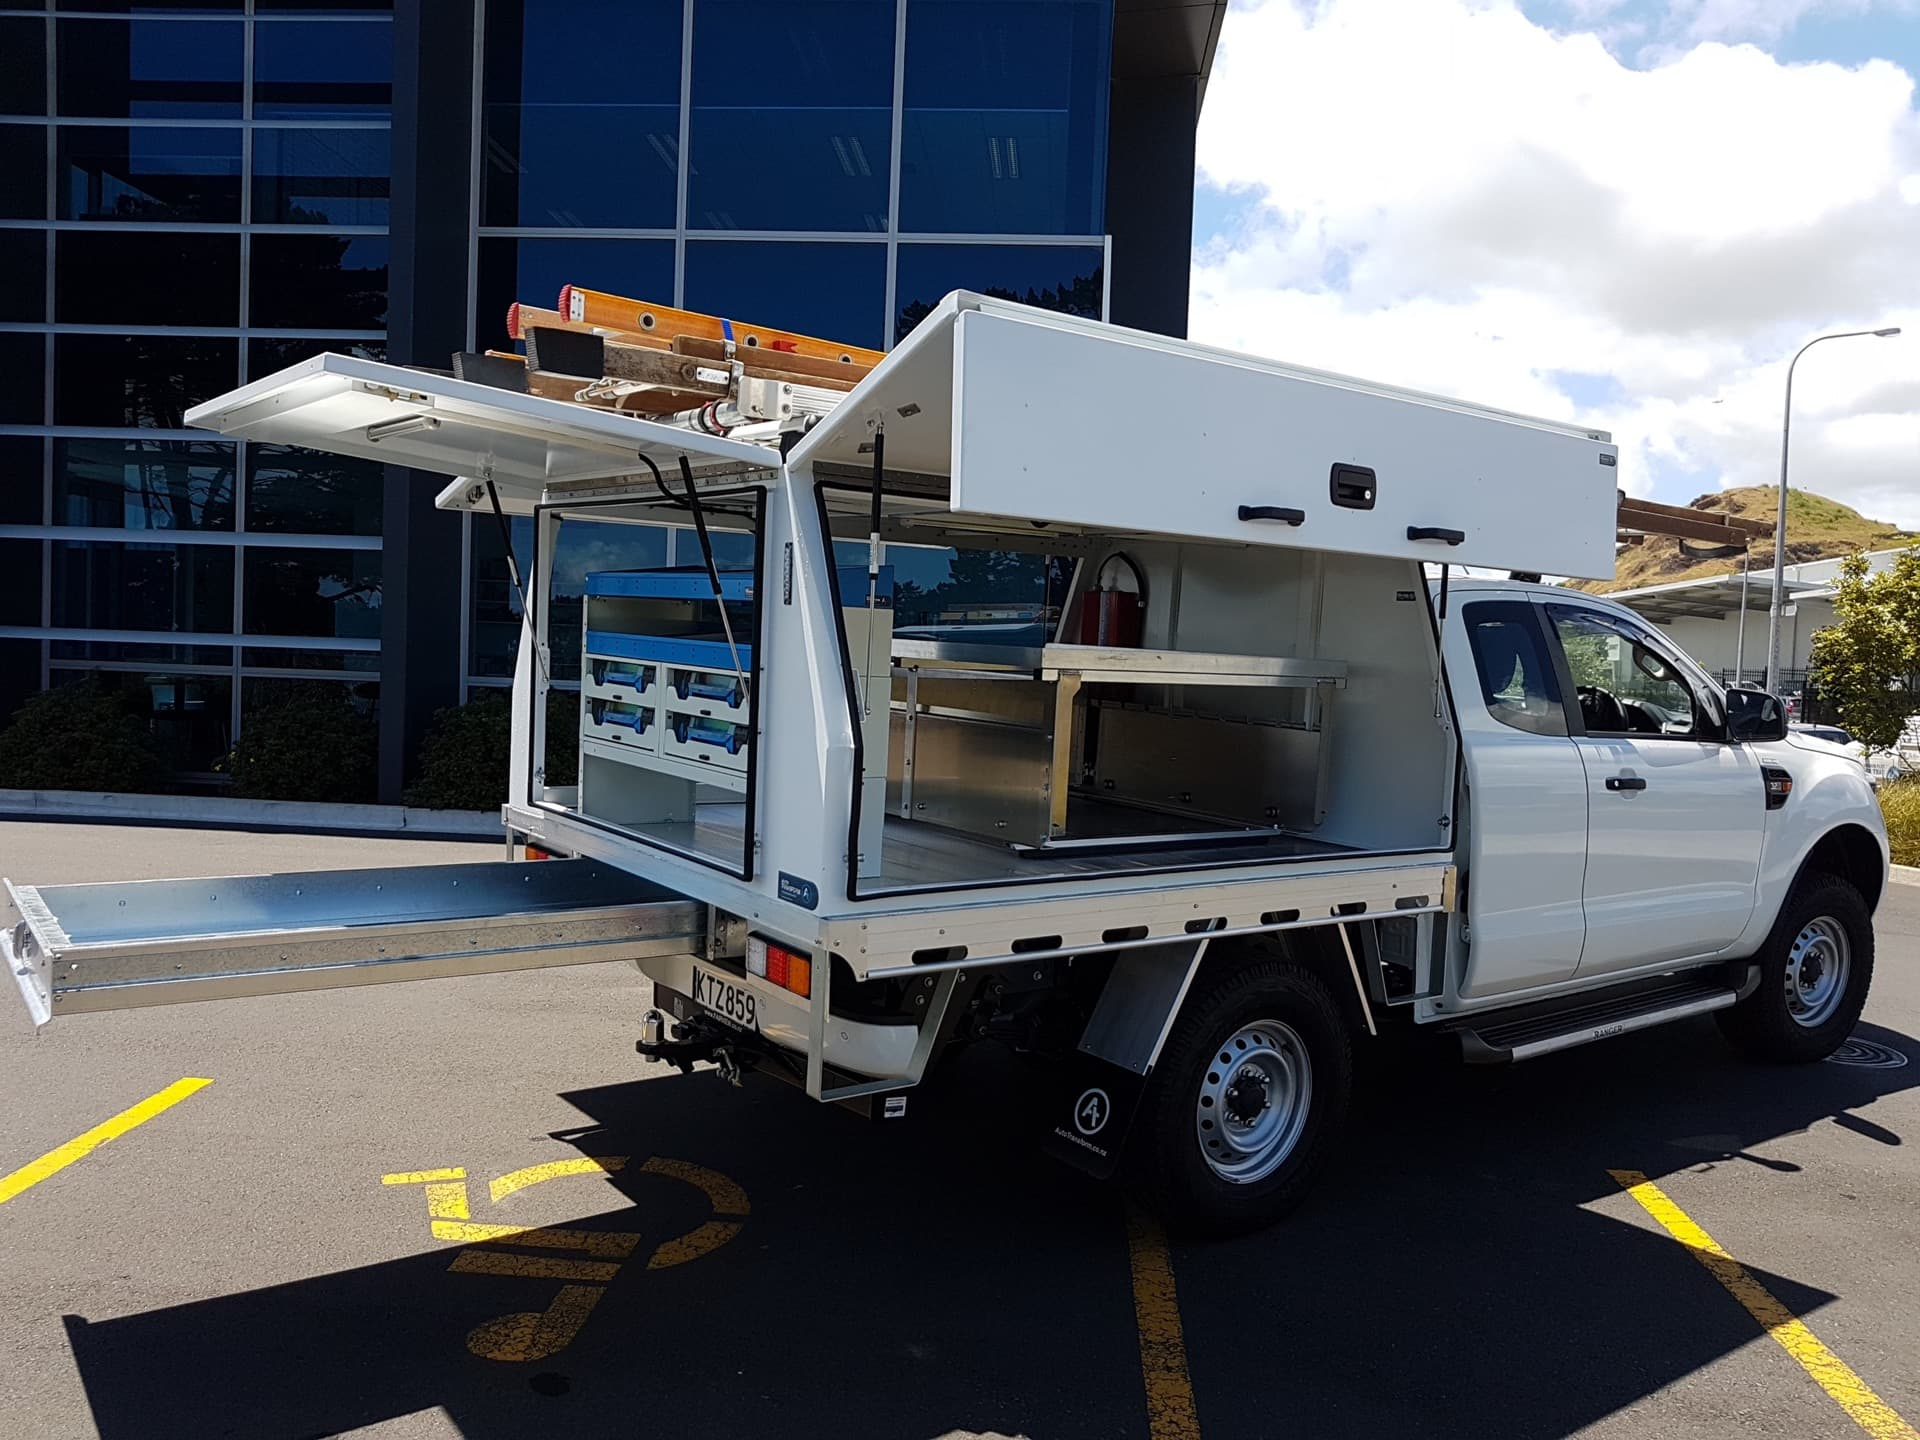 Commercial ute service body with folding doors